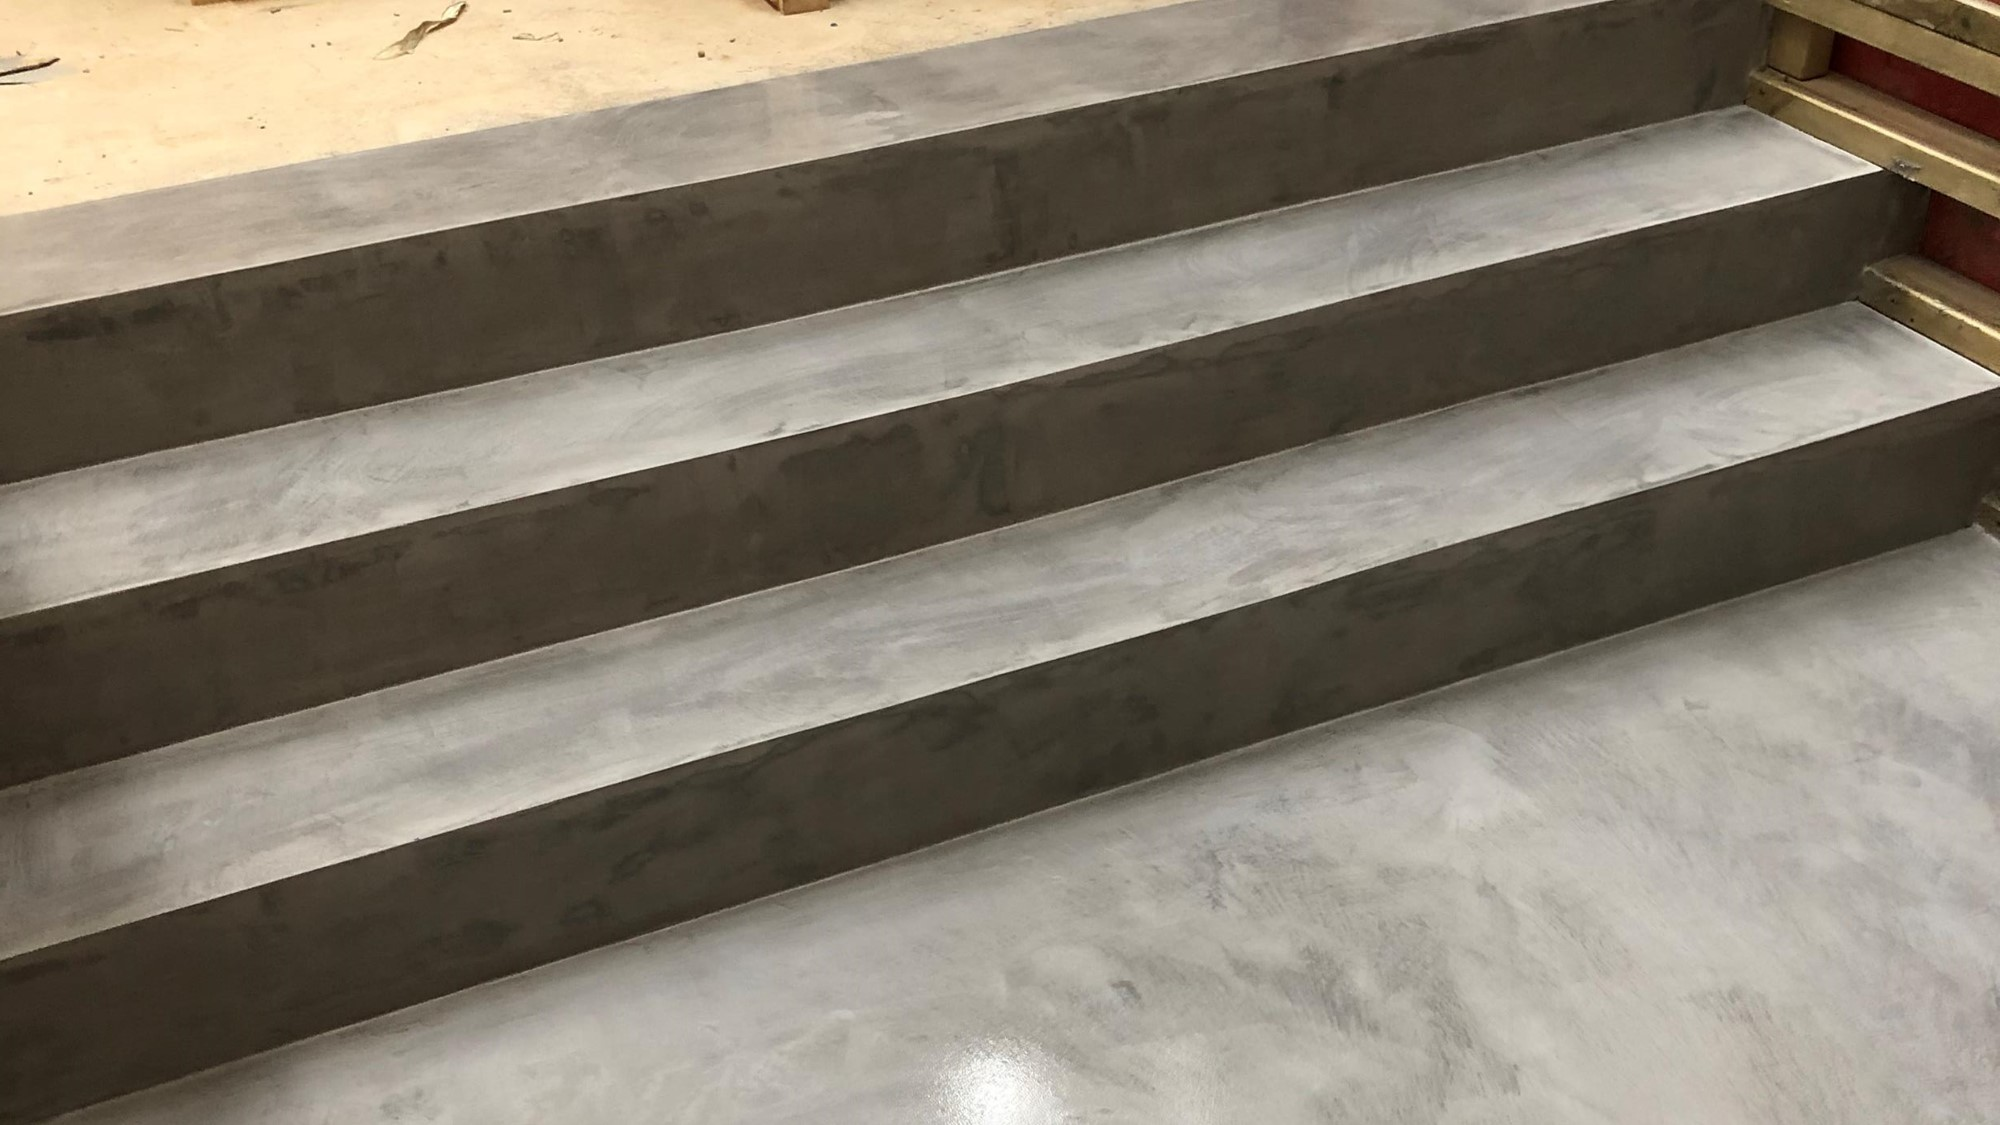 Ideal work microtopping microcement stairs by Polished Concrete Specialists in East Sussex close up